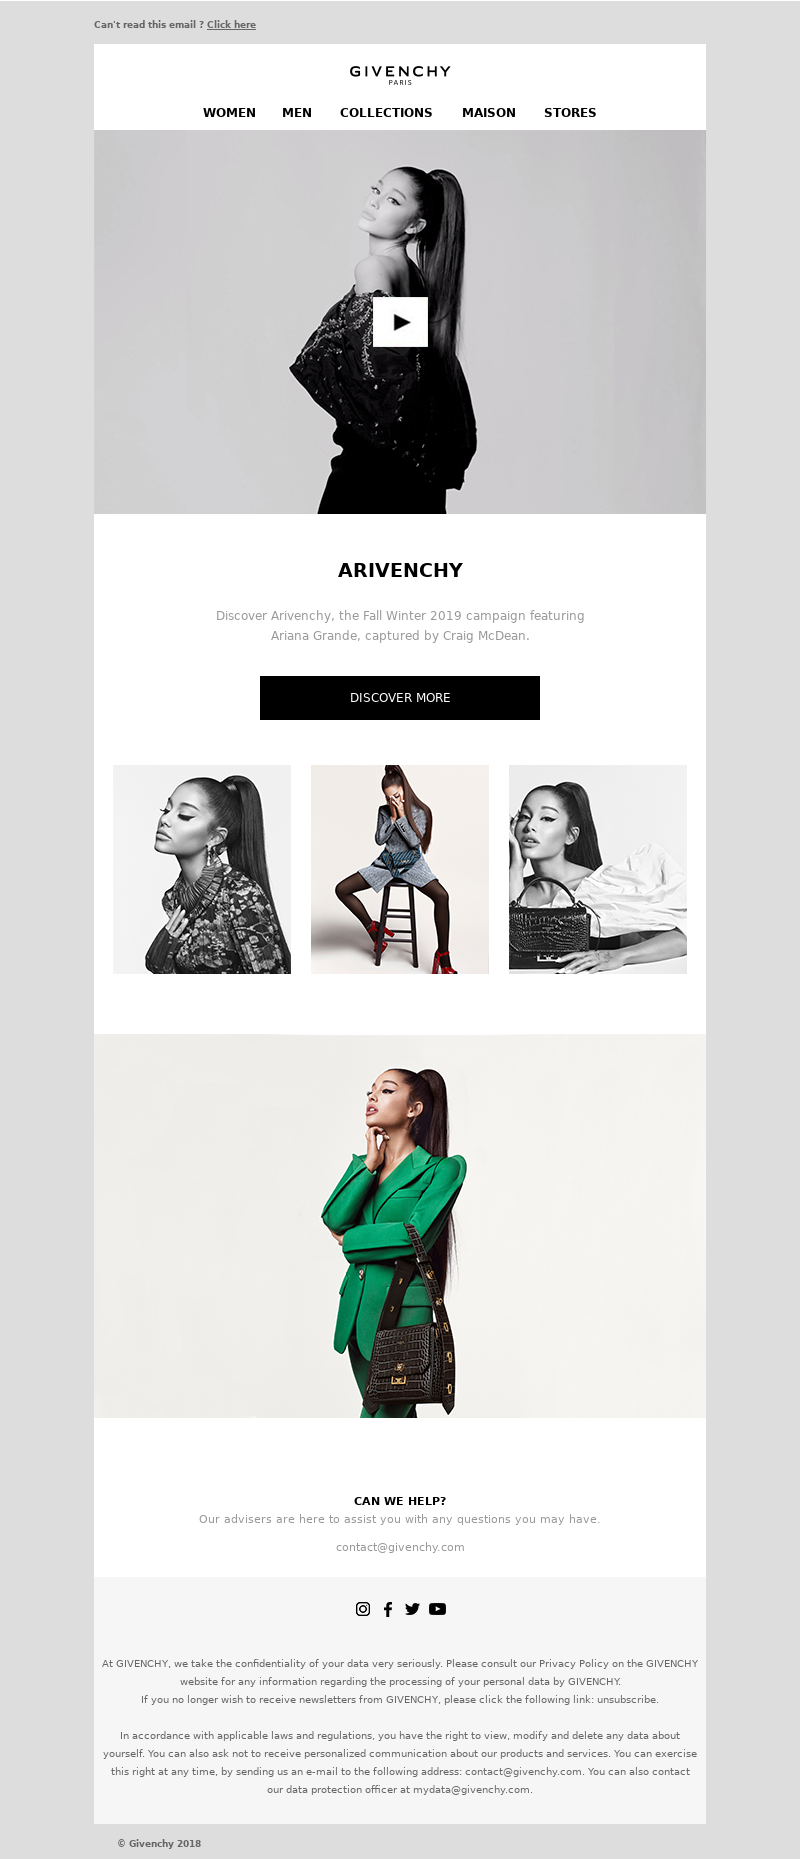 Givenchy - The FW19 campaign starring Ariana Grande